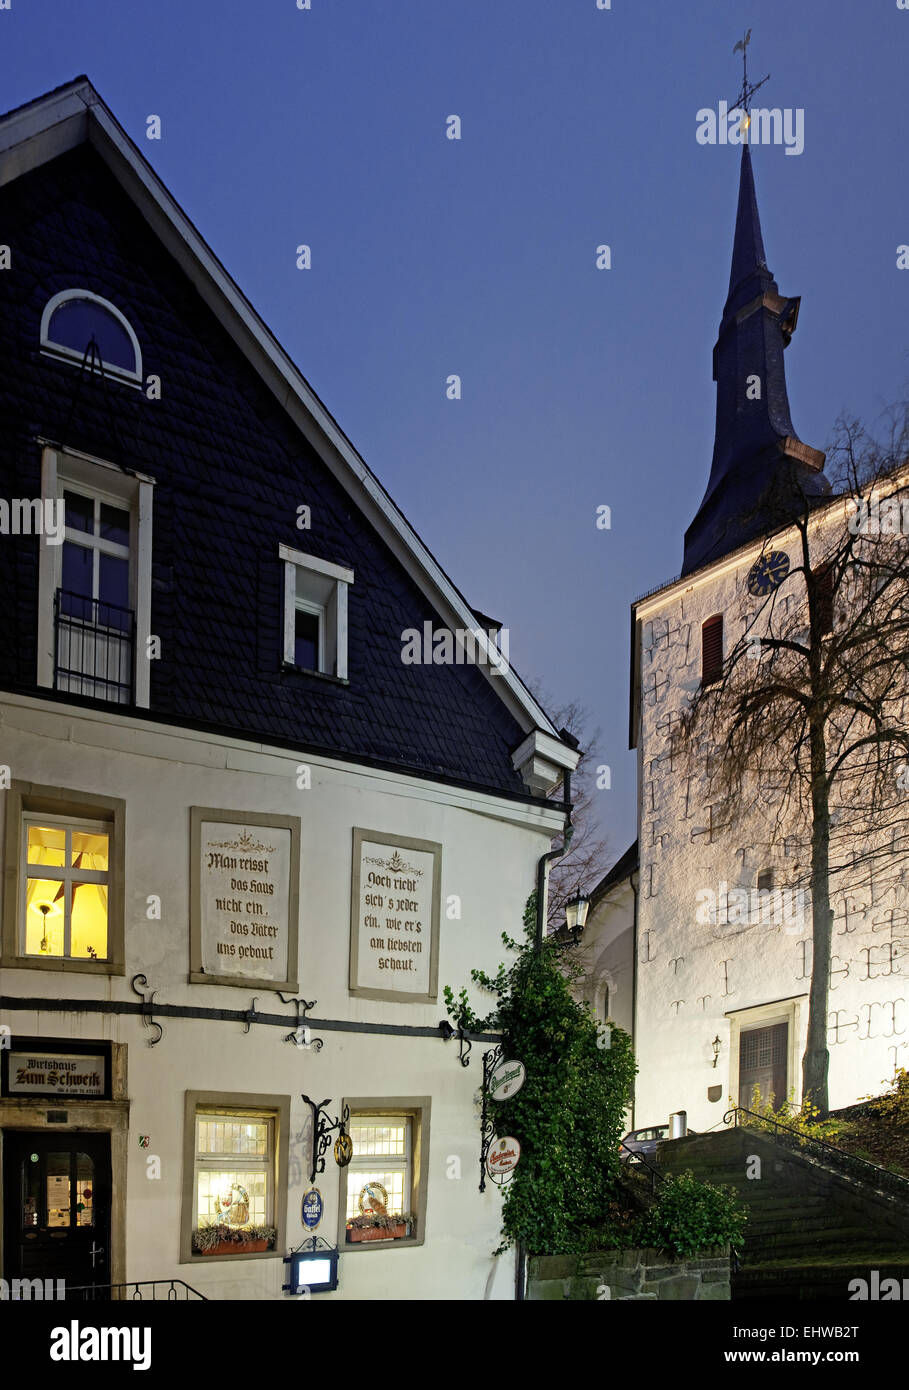 In the old town of Lüdenscheid in Germany. - Stock Image